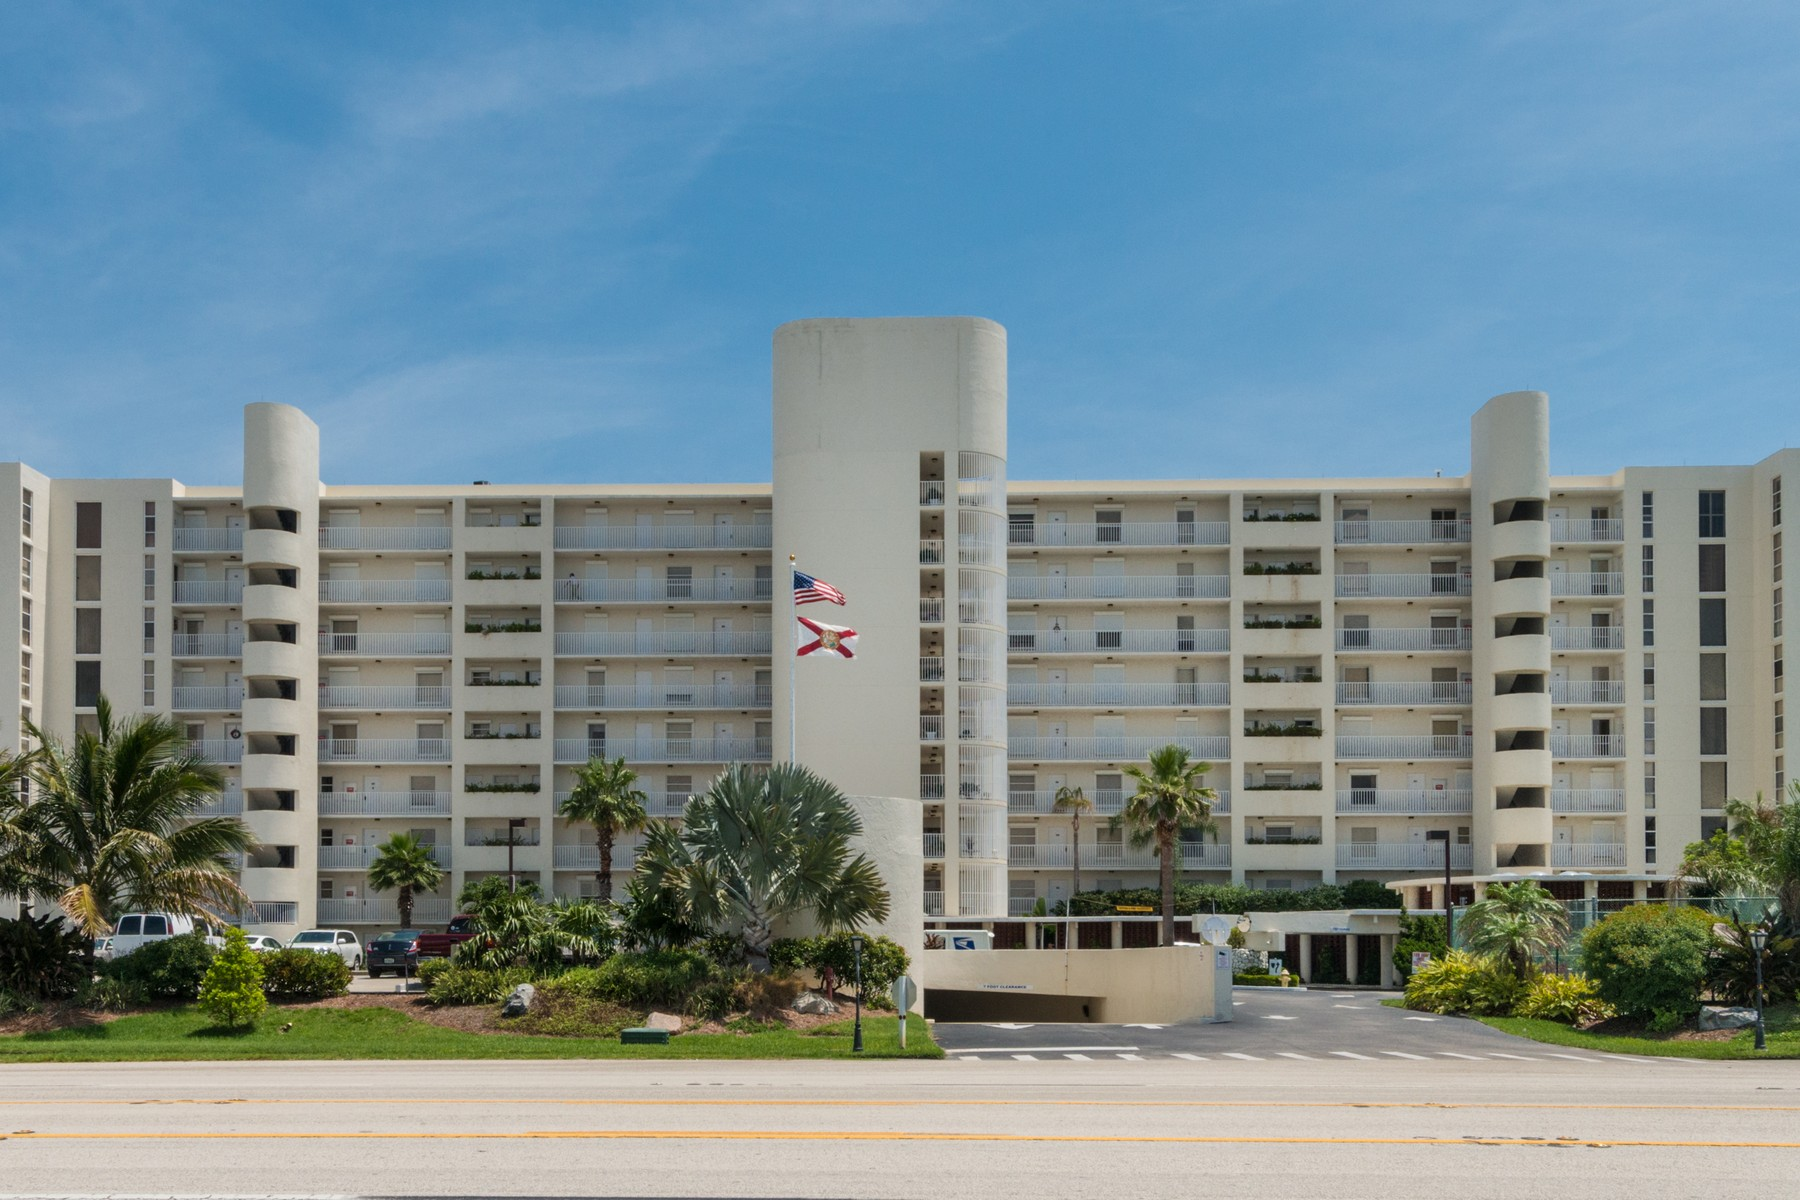 Condominium for Sale at Ocean Walk Condo 2225 Highway A1A #304 Satellite Beach, Florida 32937 United States